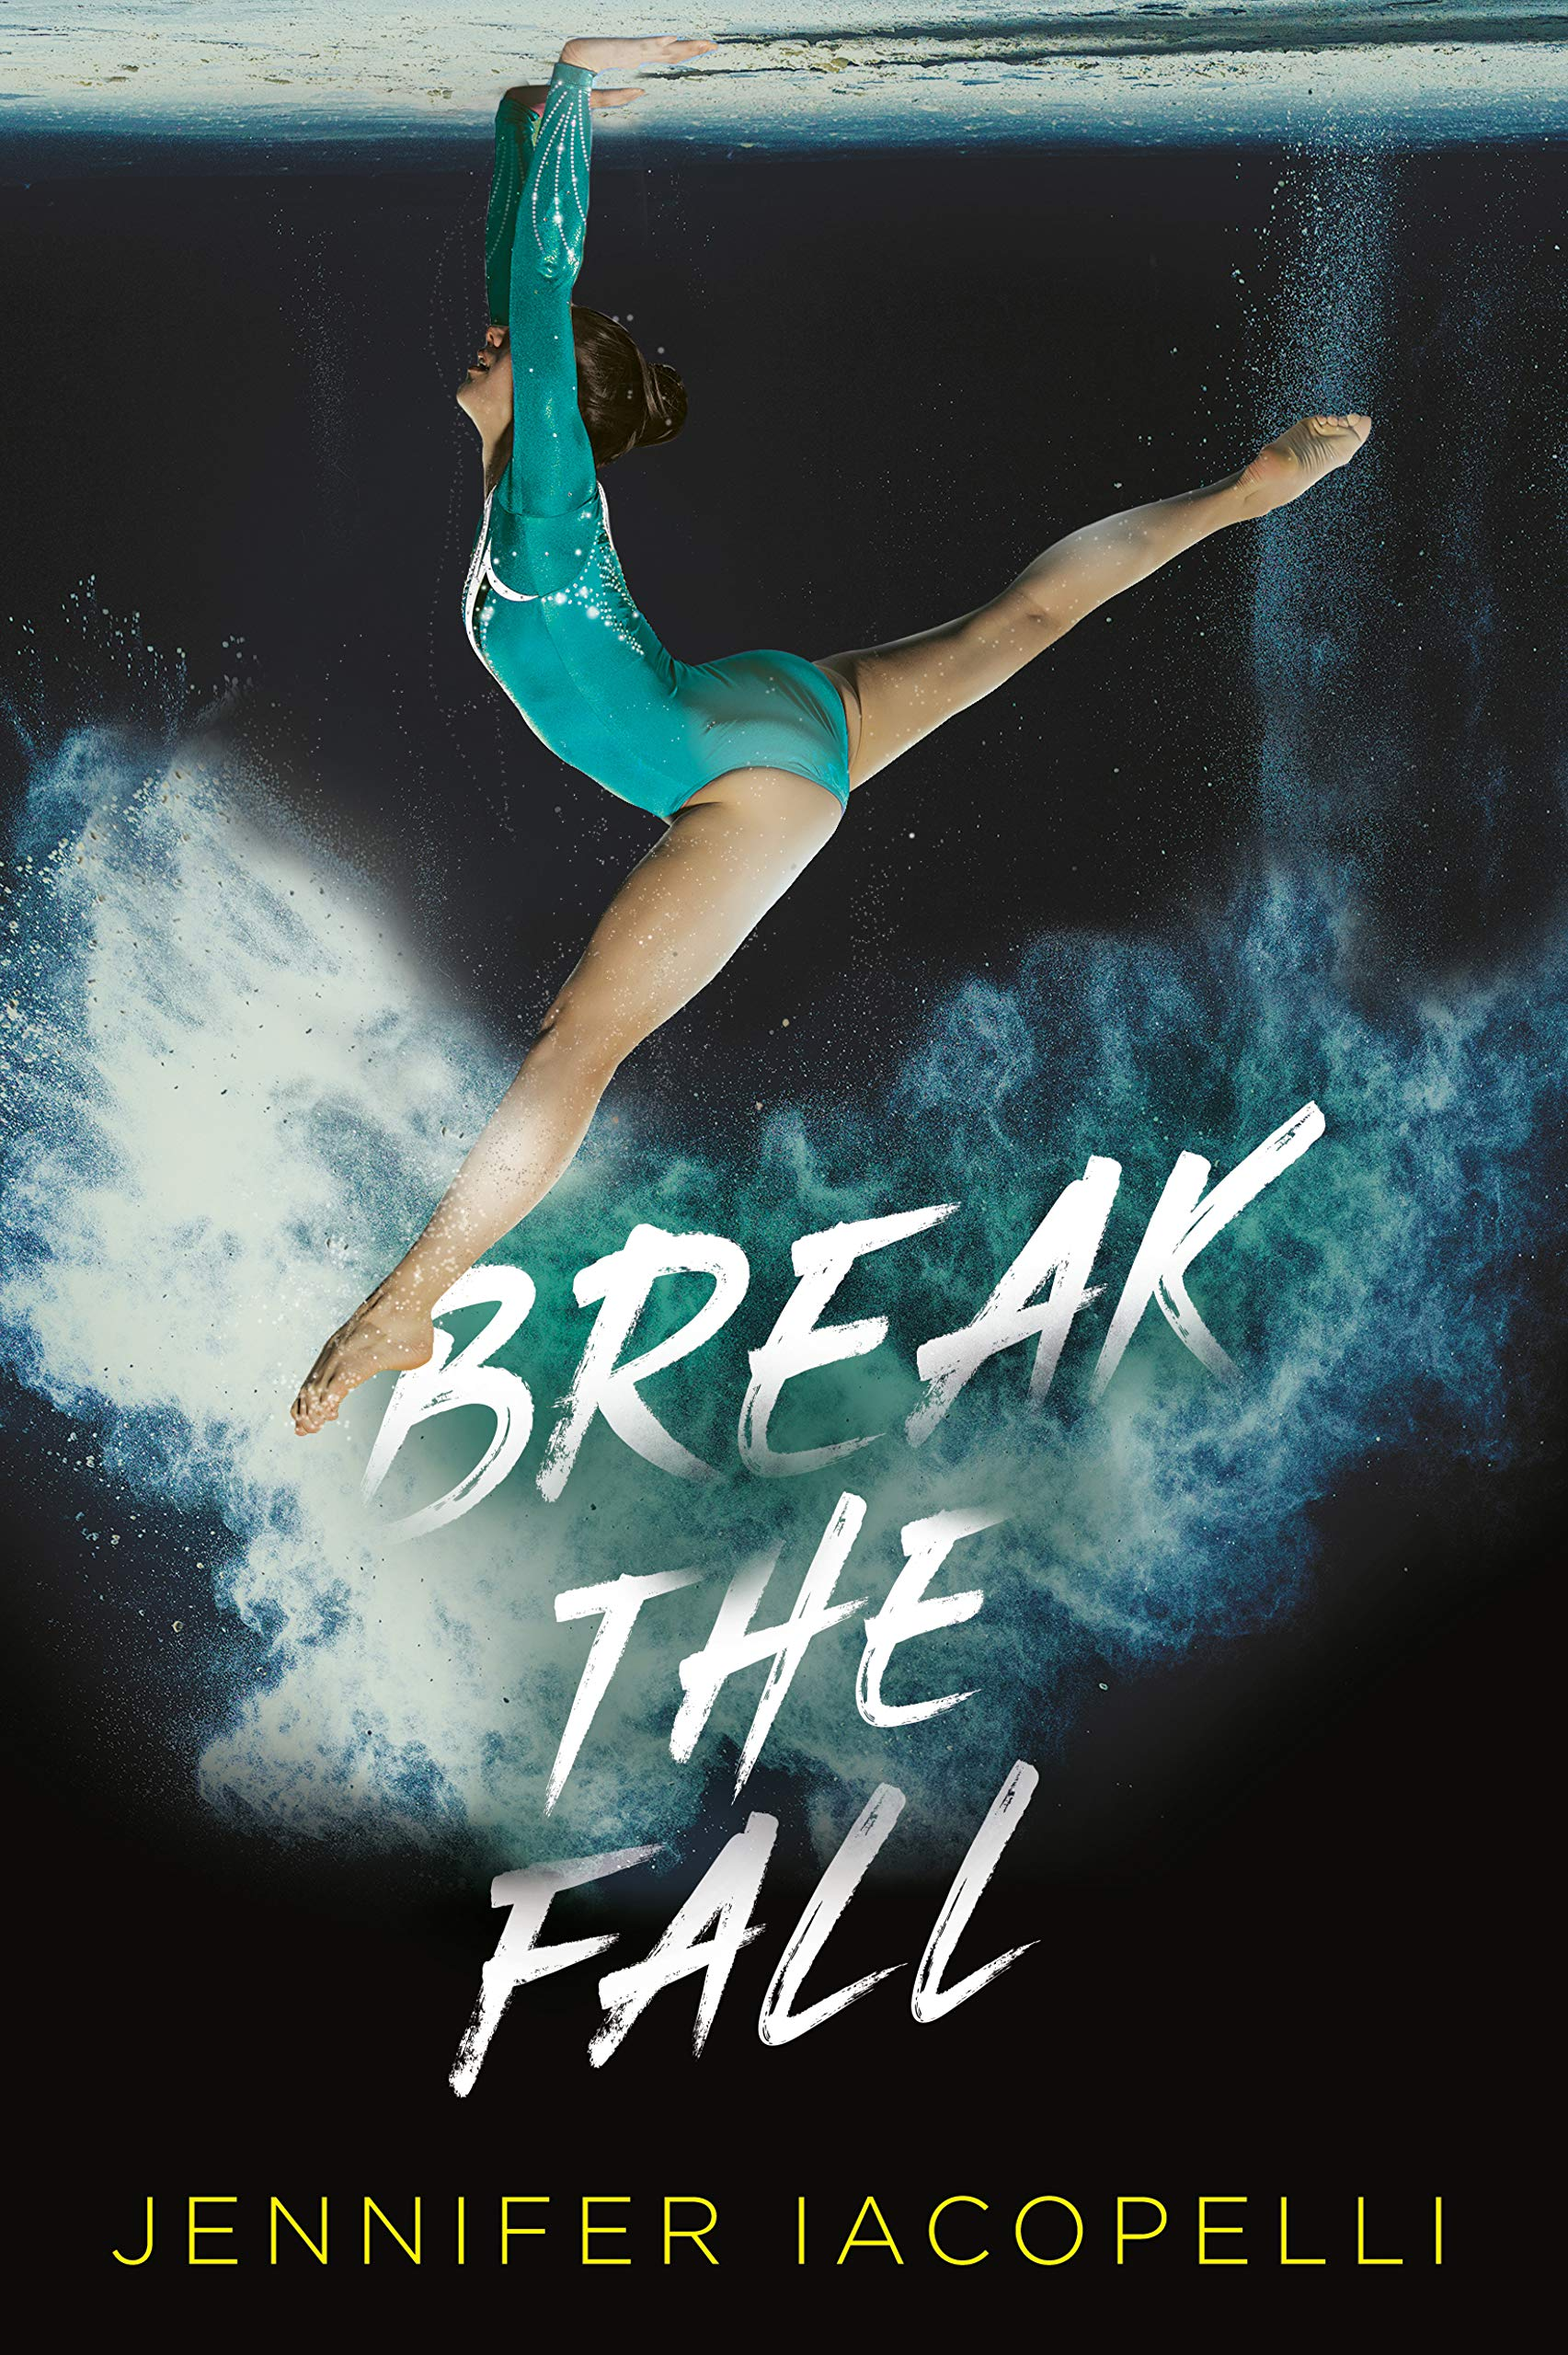 Amazon.com: Break the Fall (9780593114179): Iacopelli, Jennifer: Books